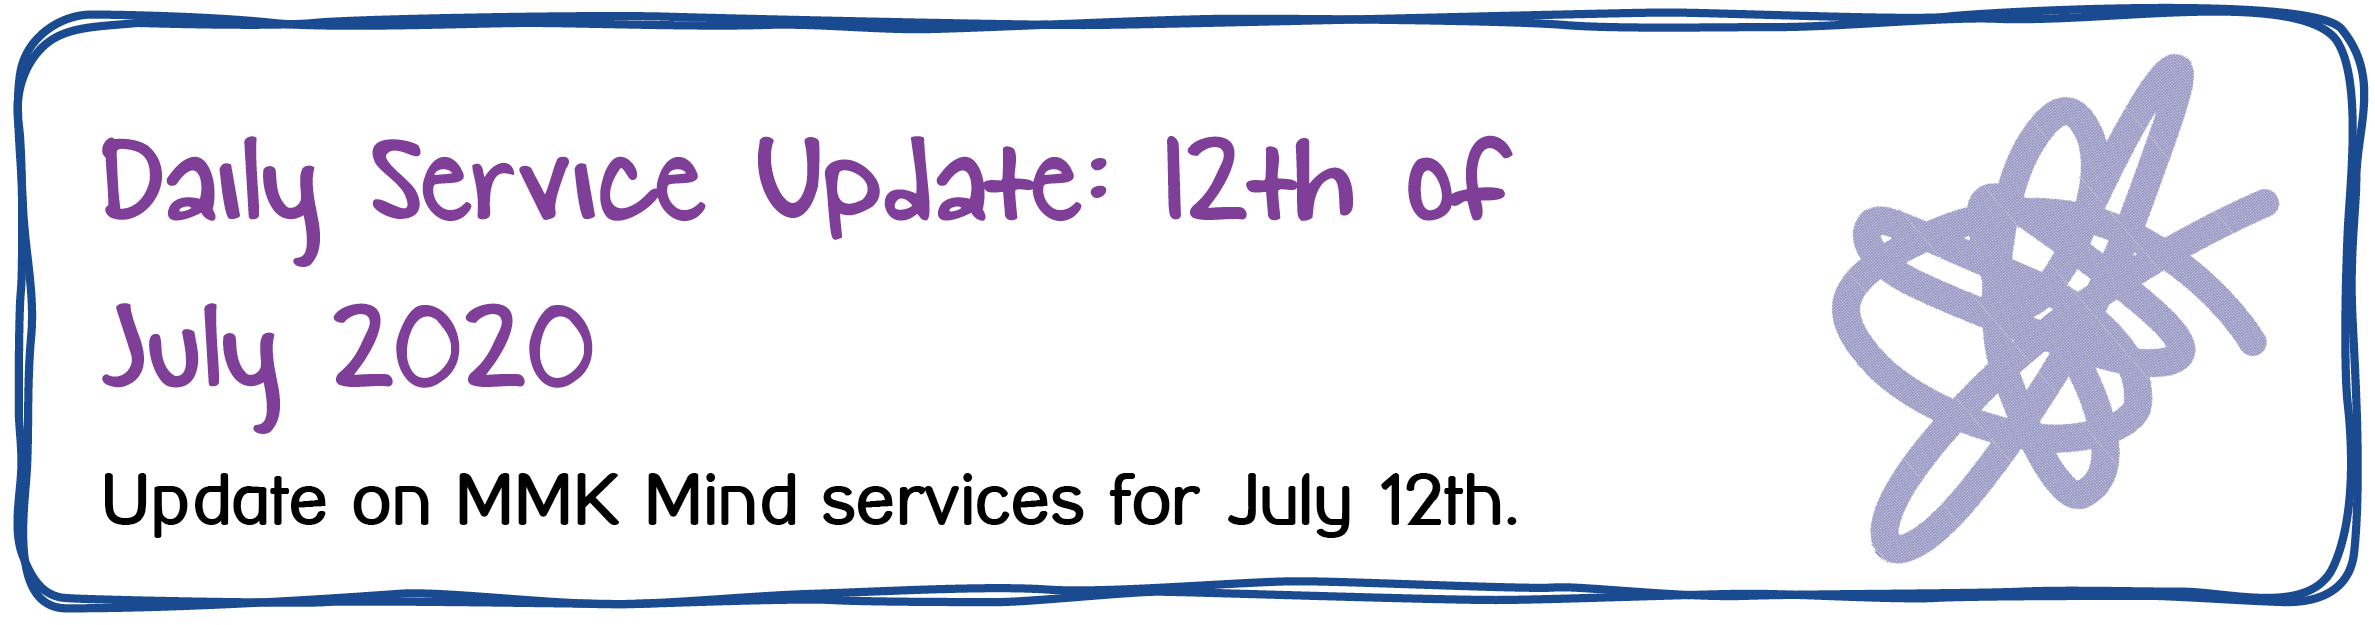 Daily Service Update: 12th of July 2020. Update on MMK Mind services for July 12th